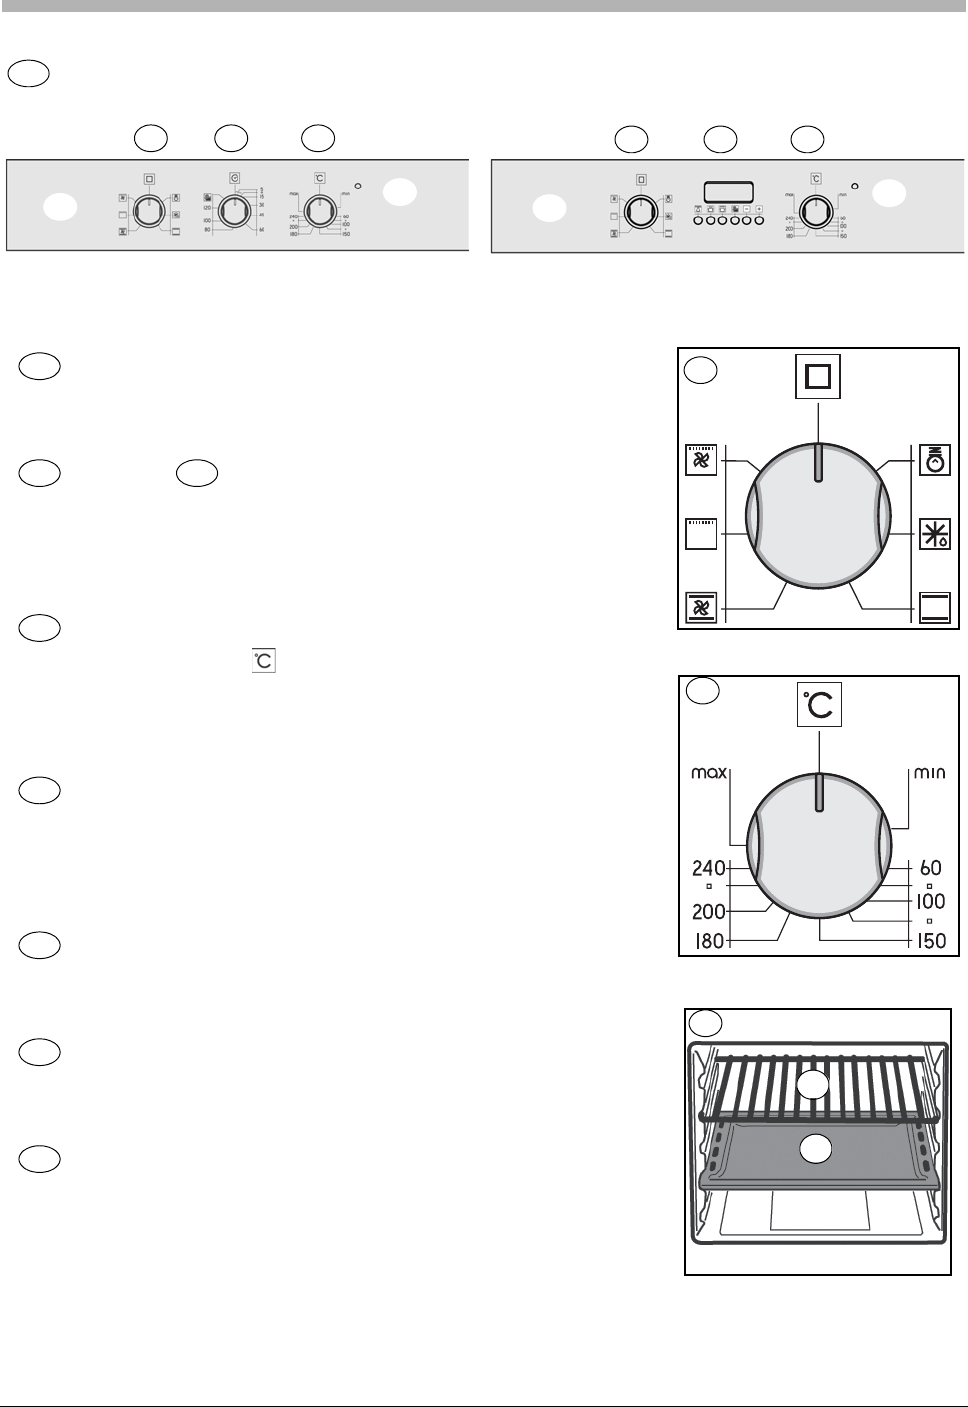 Page 16 of franke consumer products convection oven ca 52m user 15 buycottarizona Image collections